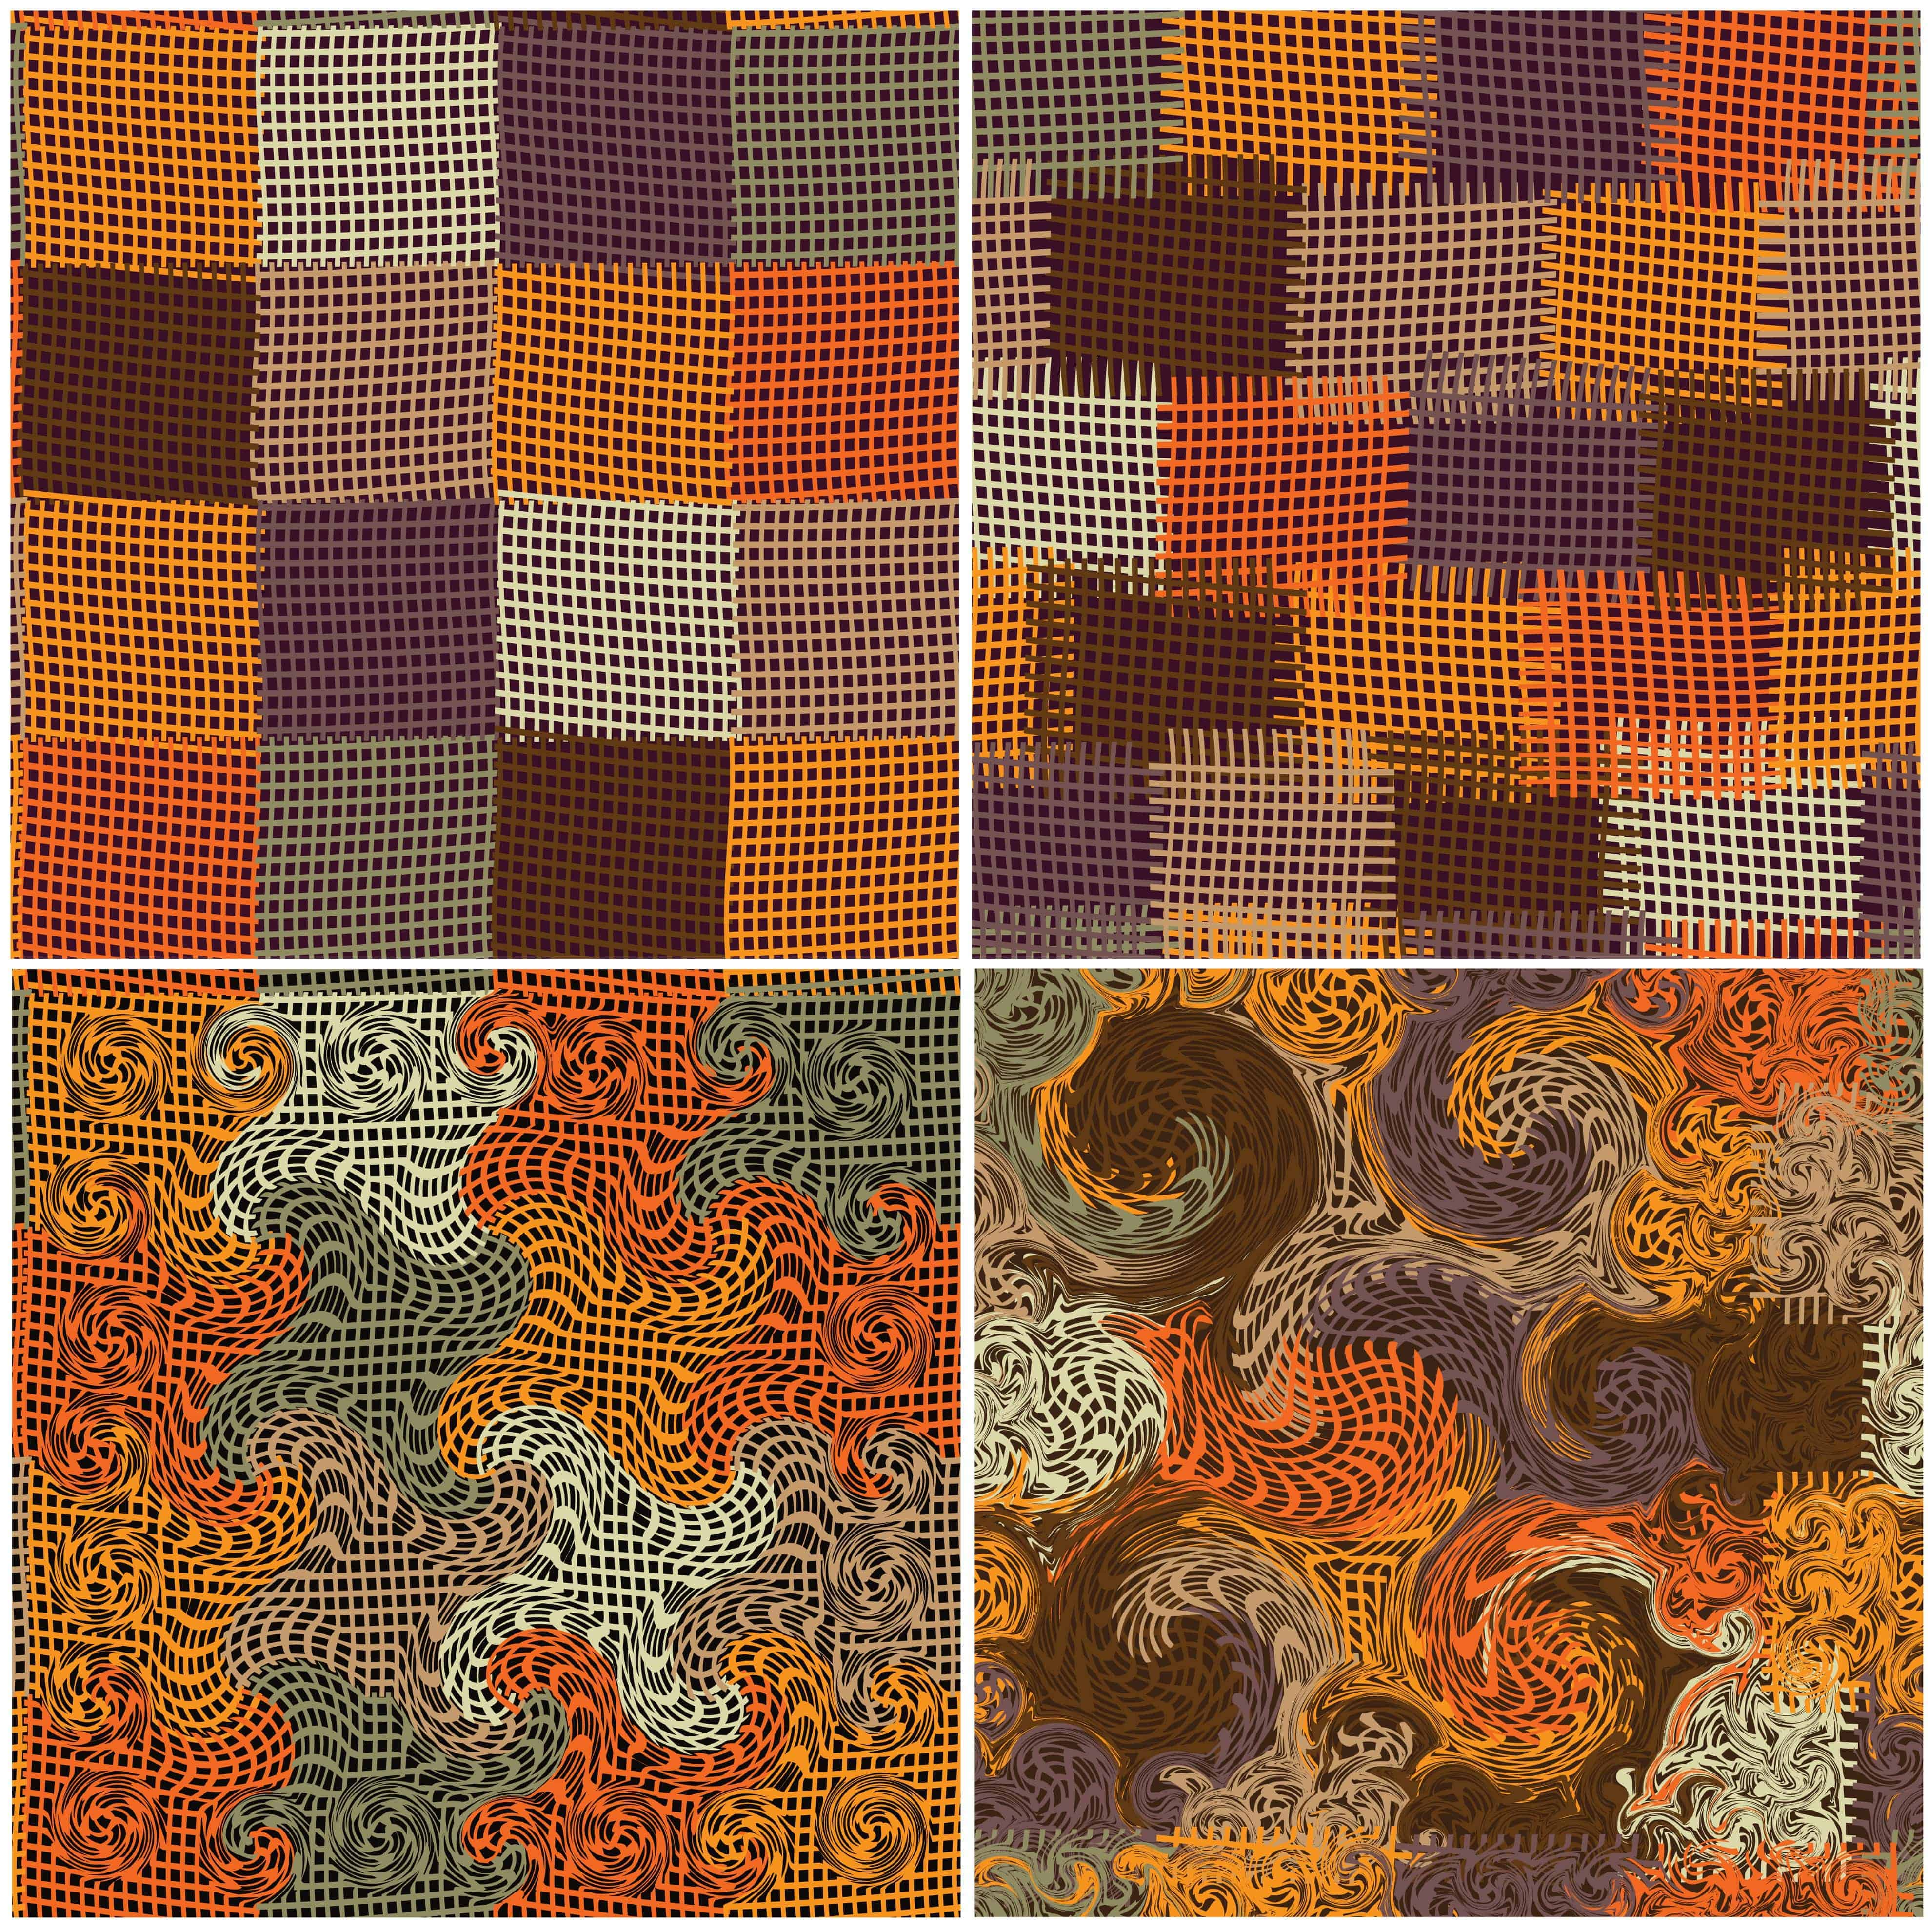 A look at the patterns of a four patch quilt.